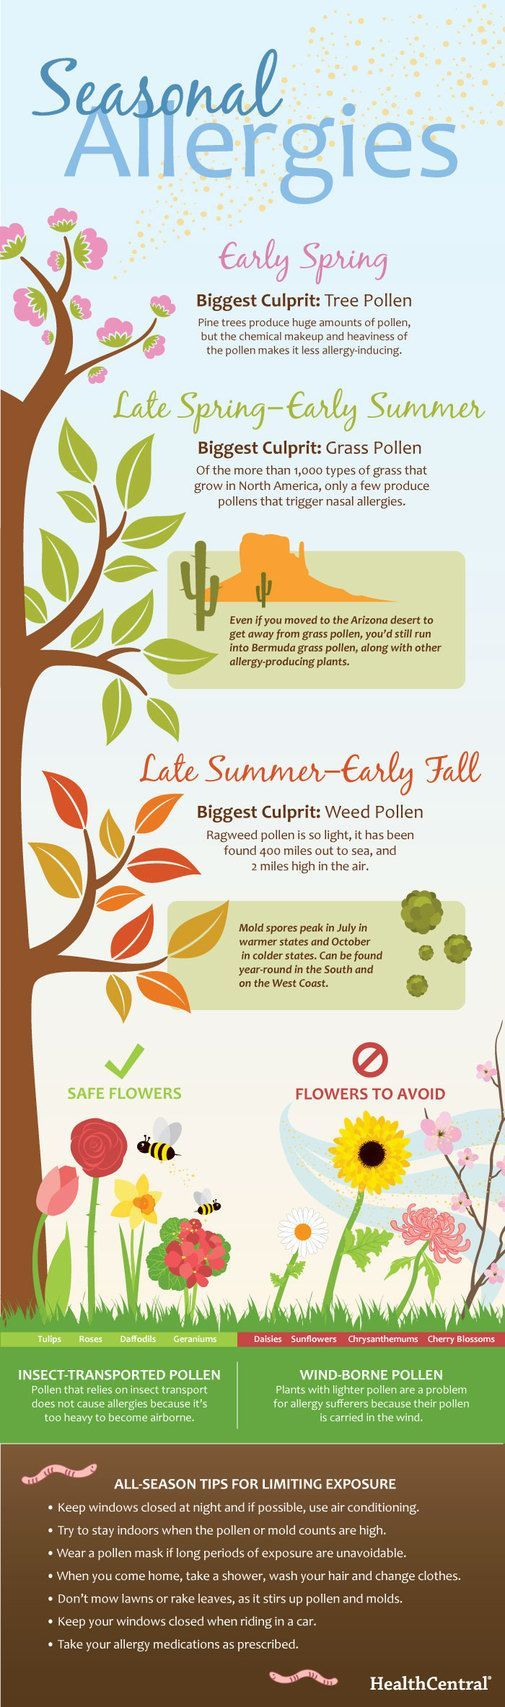 Types of summer allergies: what to watch out for